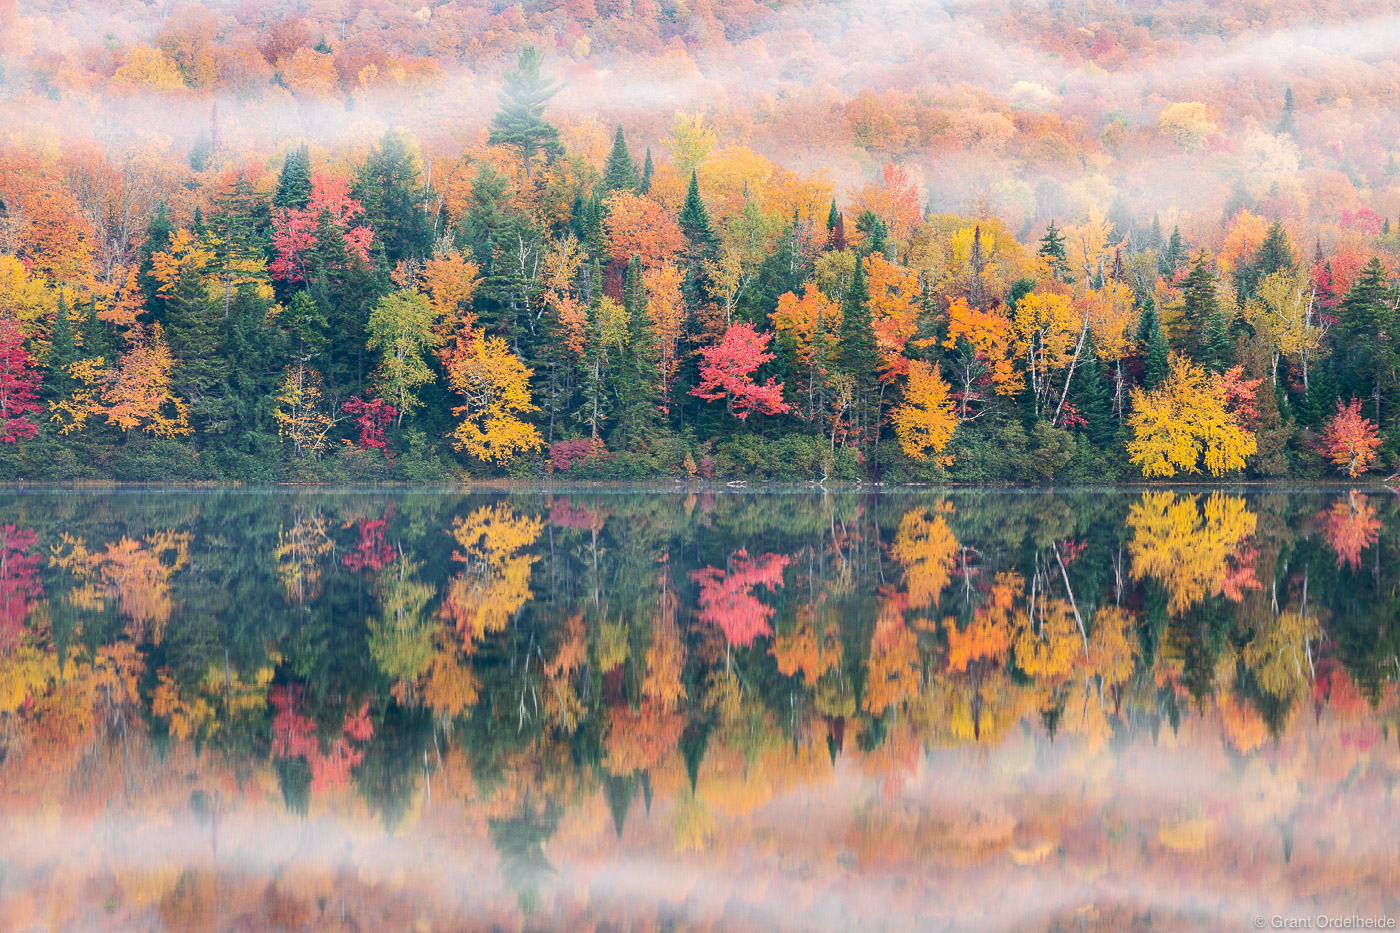 Adirondack, fall, lake, placid, new york, kaleidoscope, reflected, pond,  mountains, upstate, photo